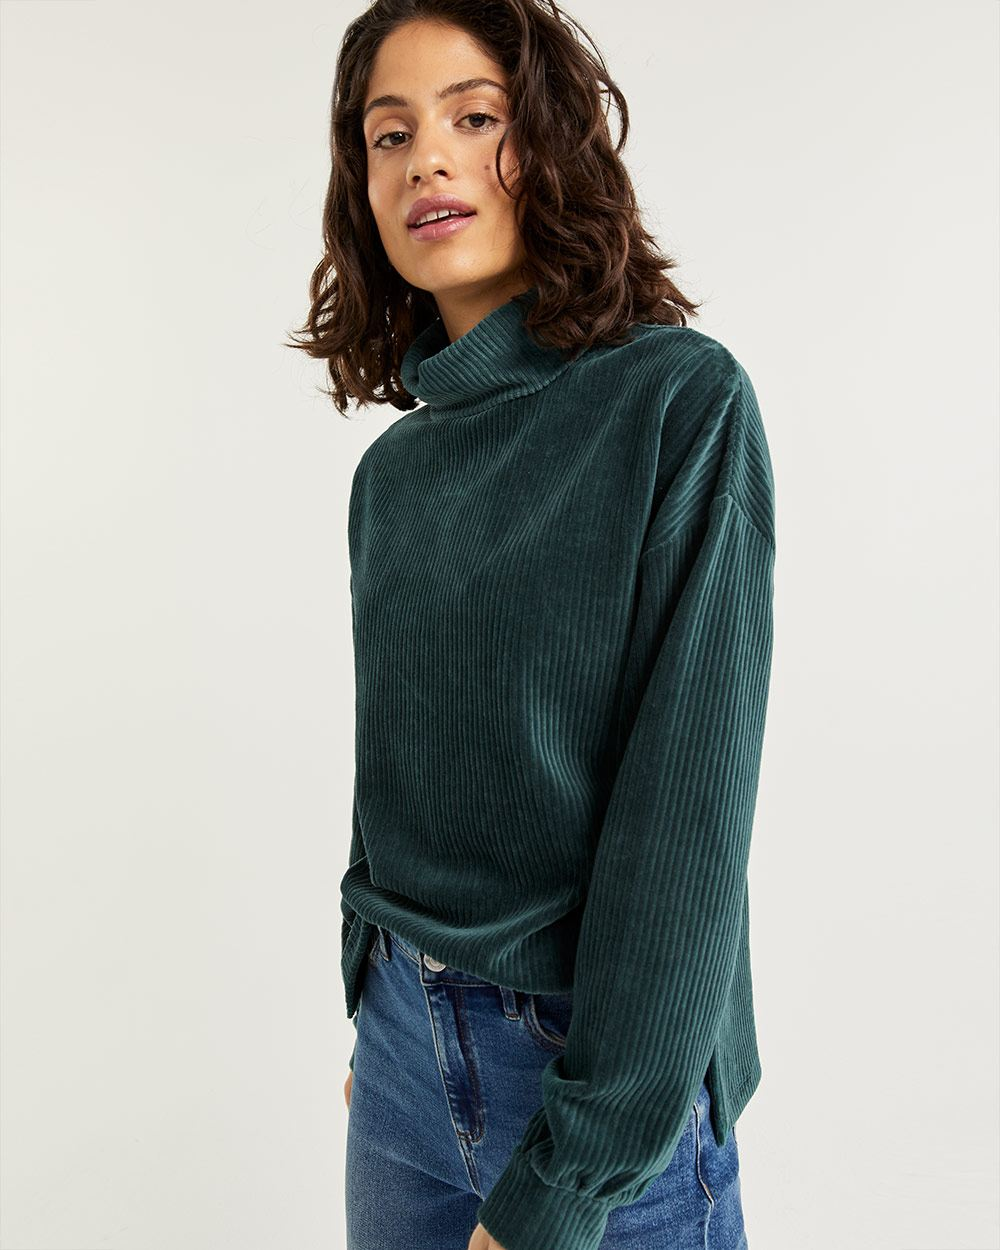 Corduroy Long Sleeve Tee with Turtleneck